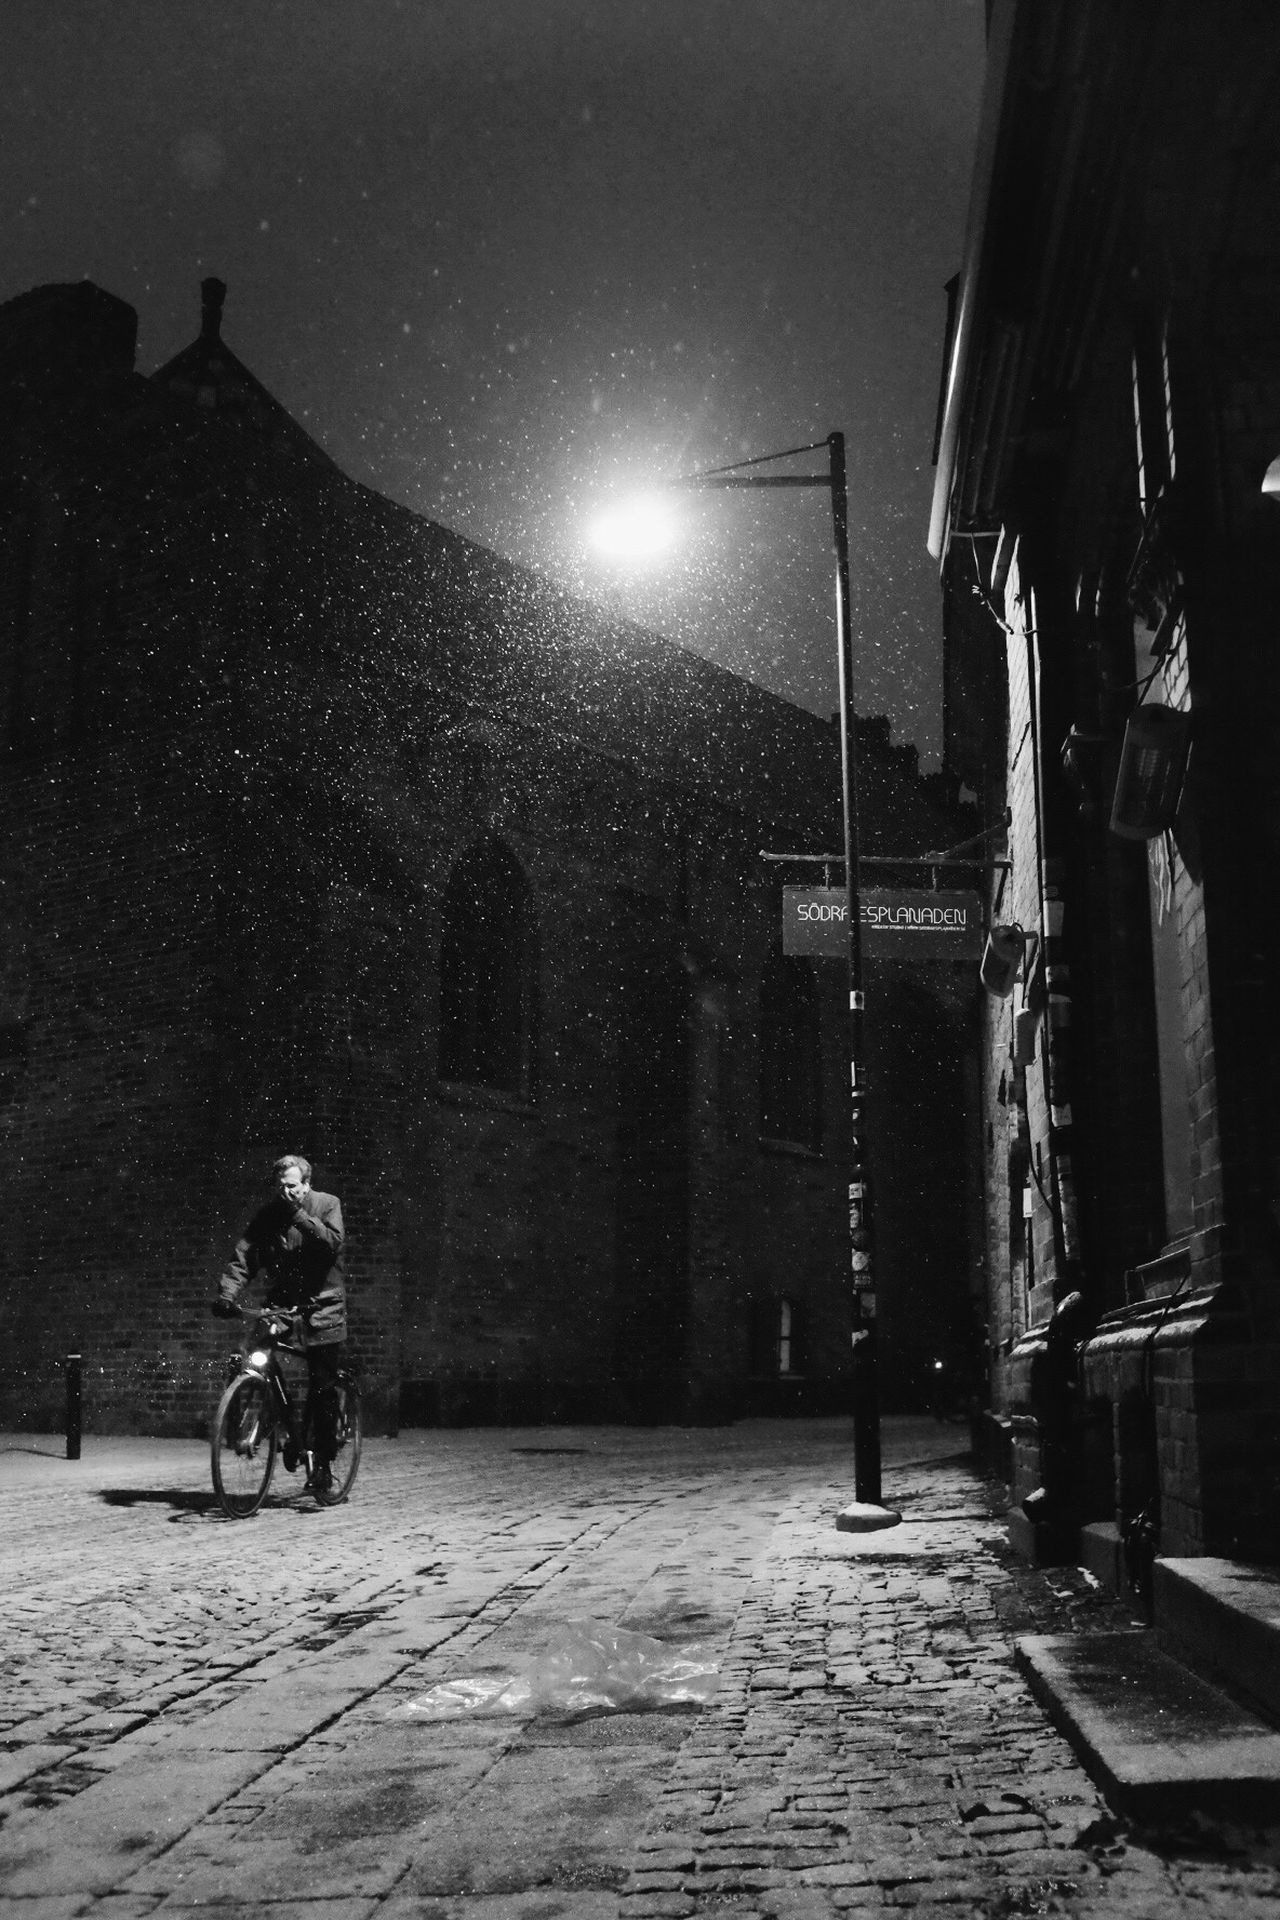 Illuminated One Person Night Black And White Winter Monochrome Transportation Bw_collection Street Photography Shootermag Snow